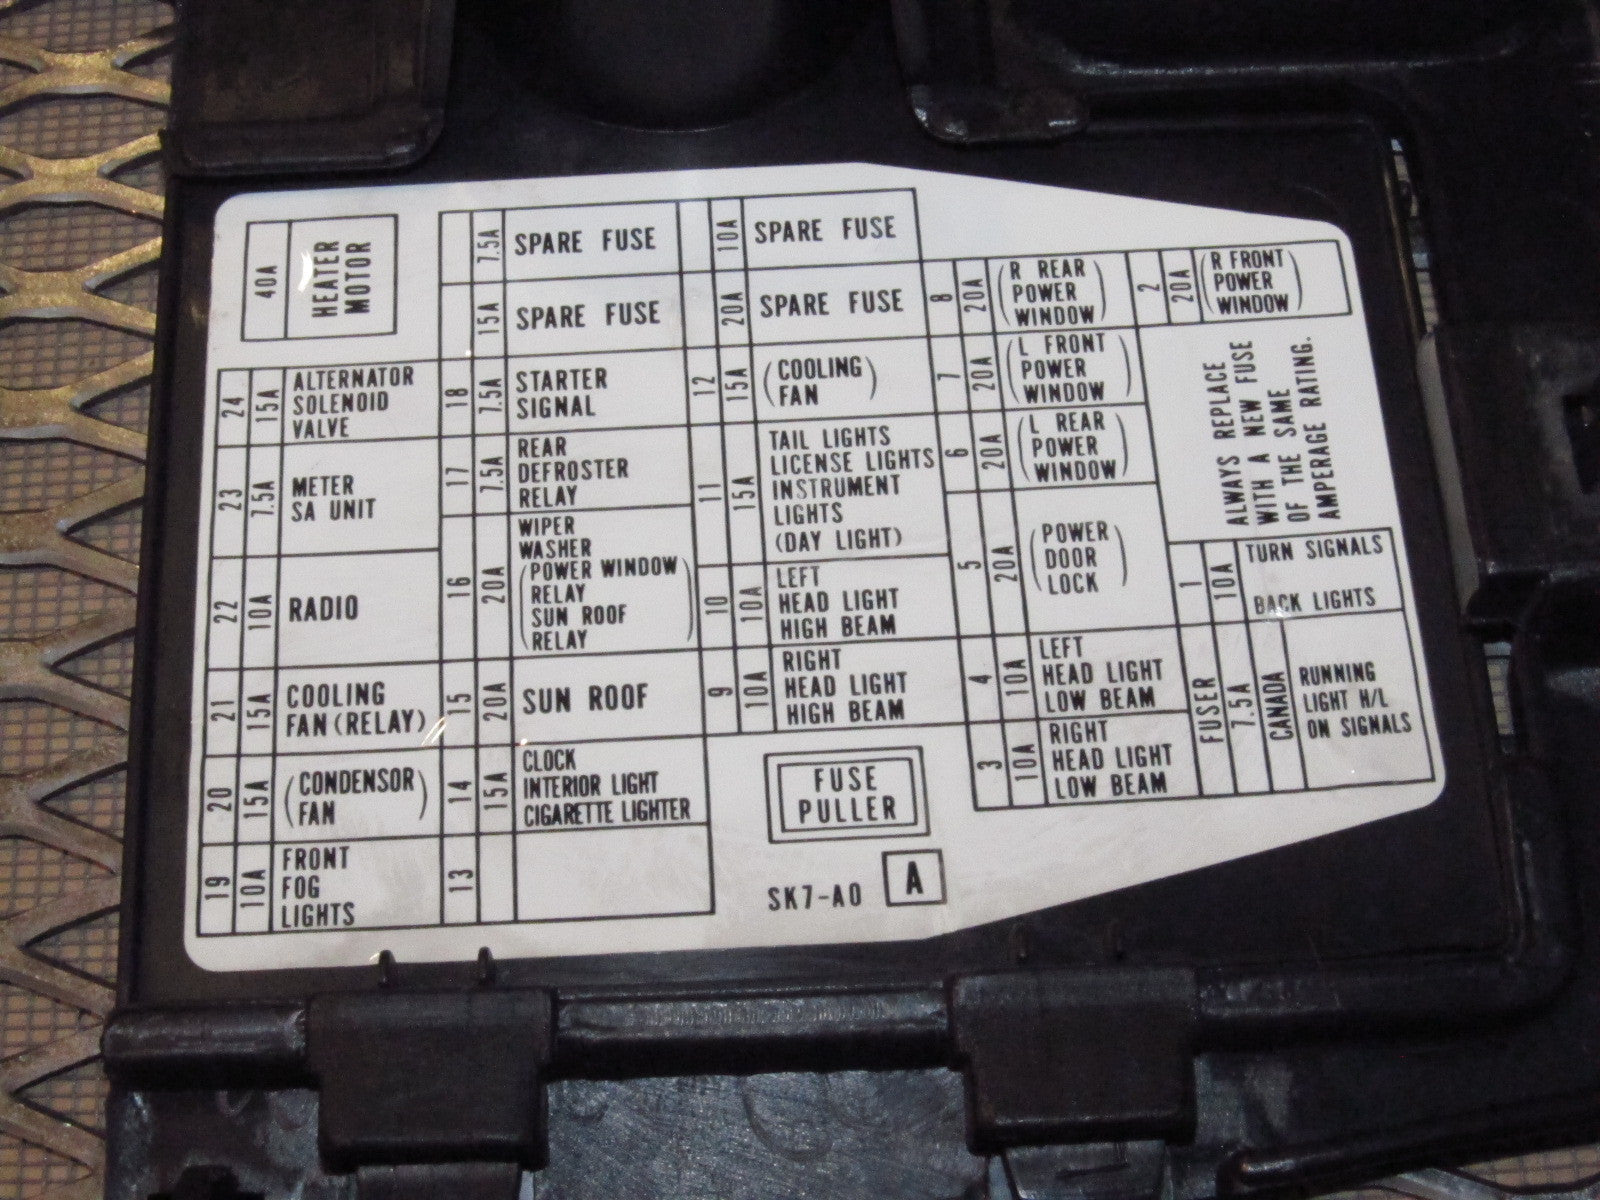 Integra Fuse Box Auto Electrical Wiring Diagram 93 Saturn 90 91 92 Acura Oem Kick Panel Cover Set